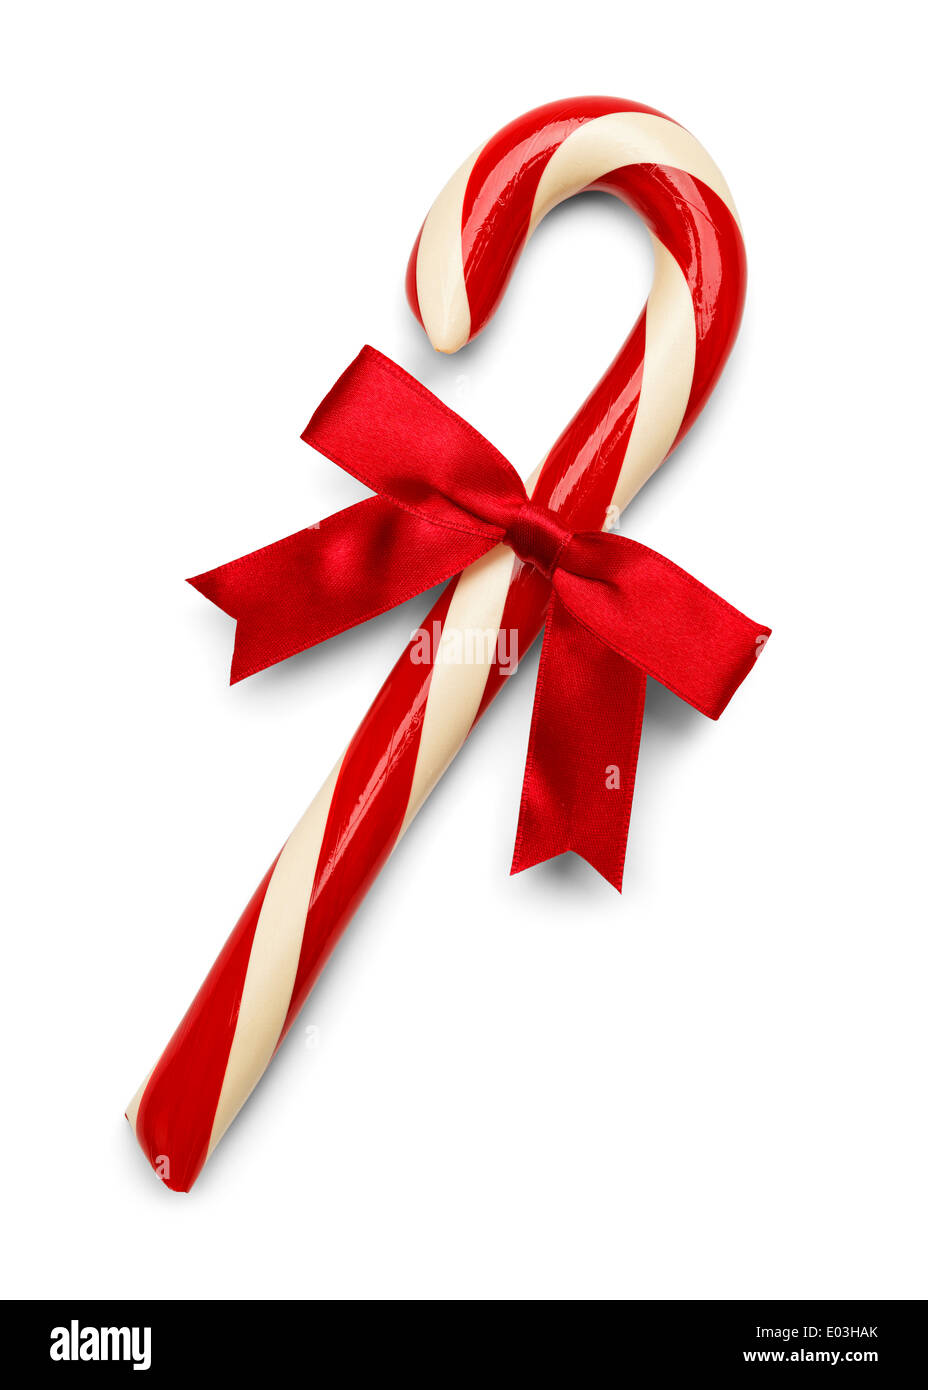 Christmas Candy Cane with Red Bow Isolated on White Background. - Stock Image